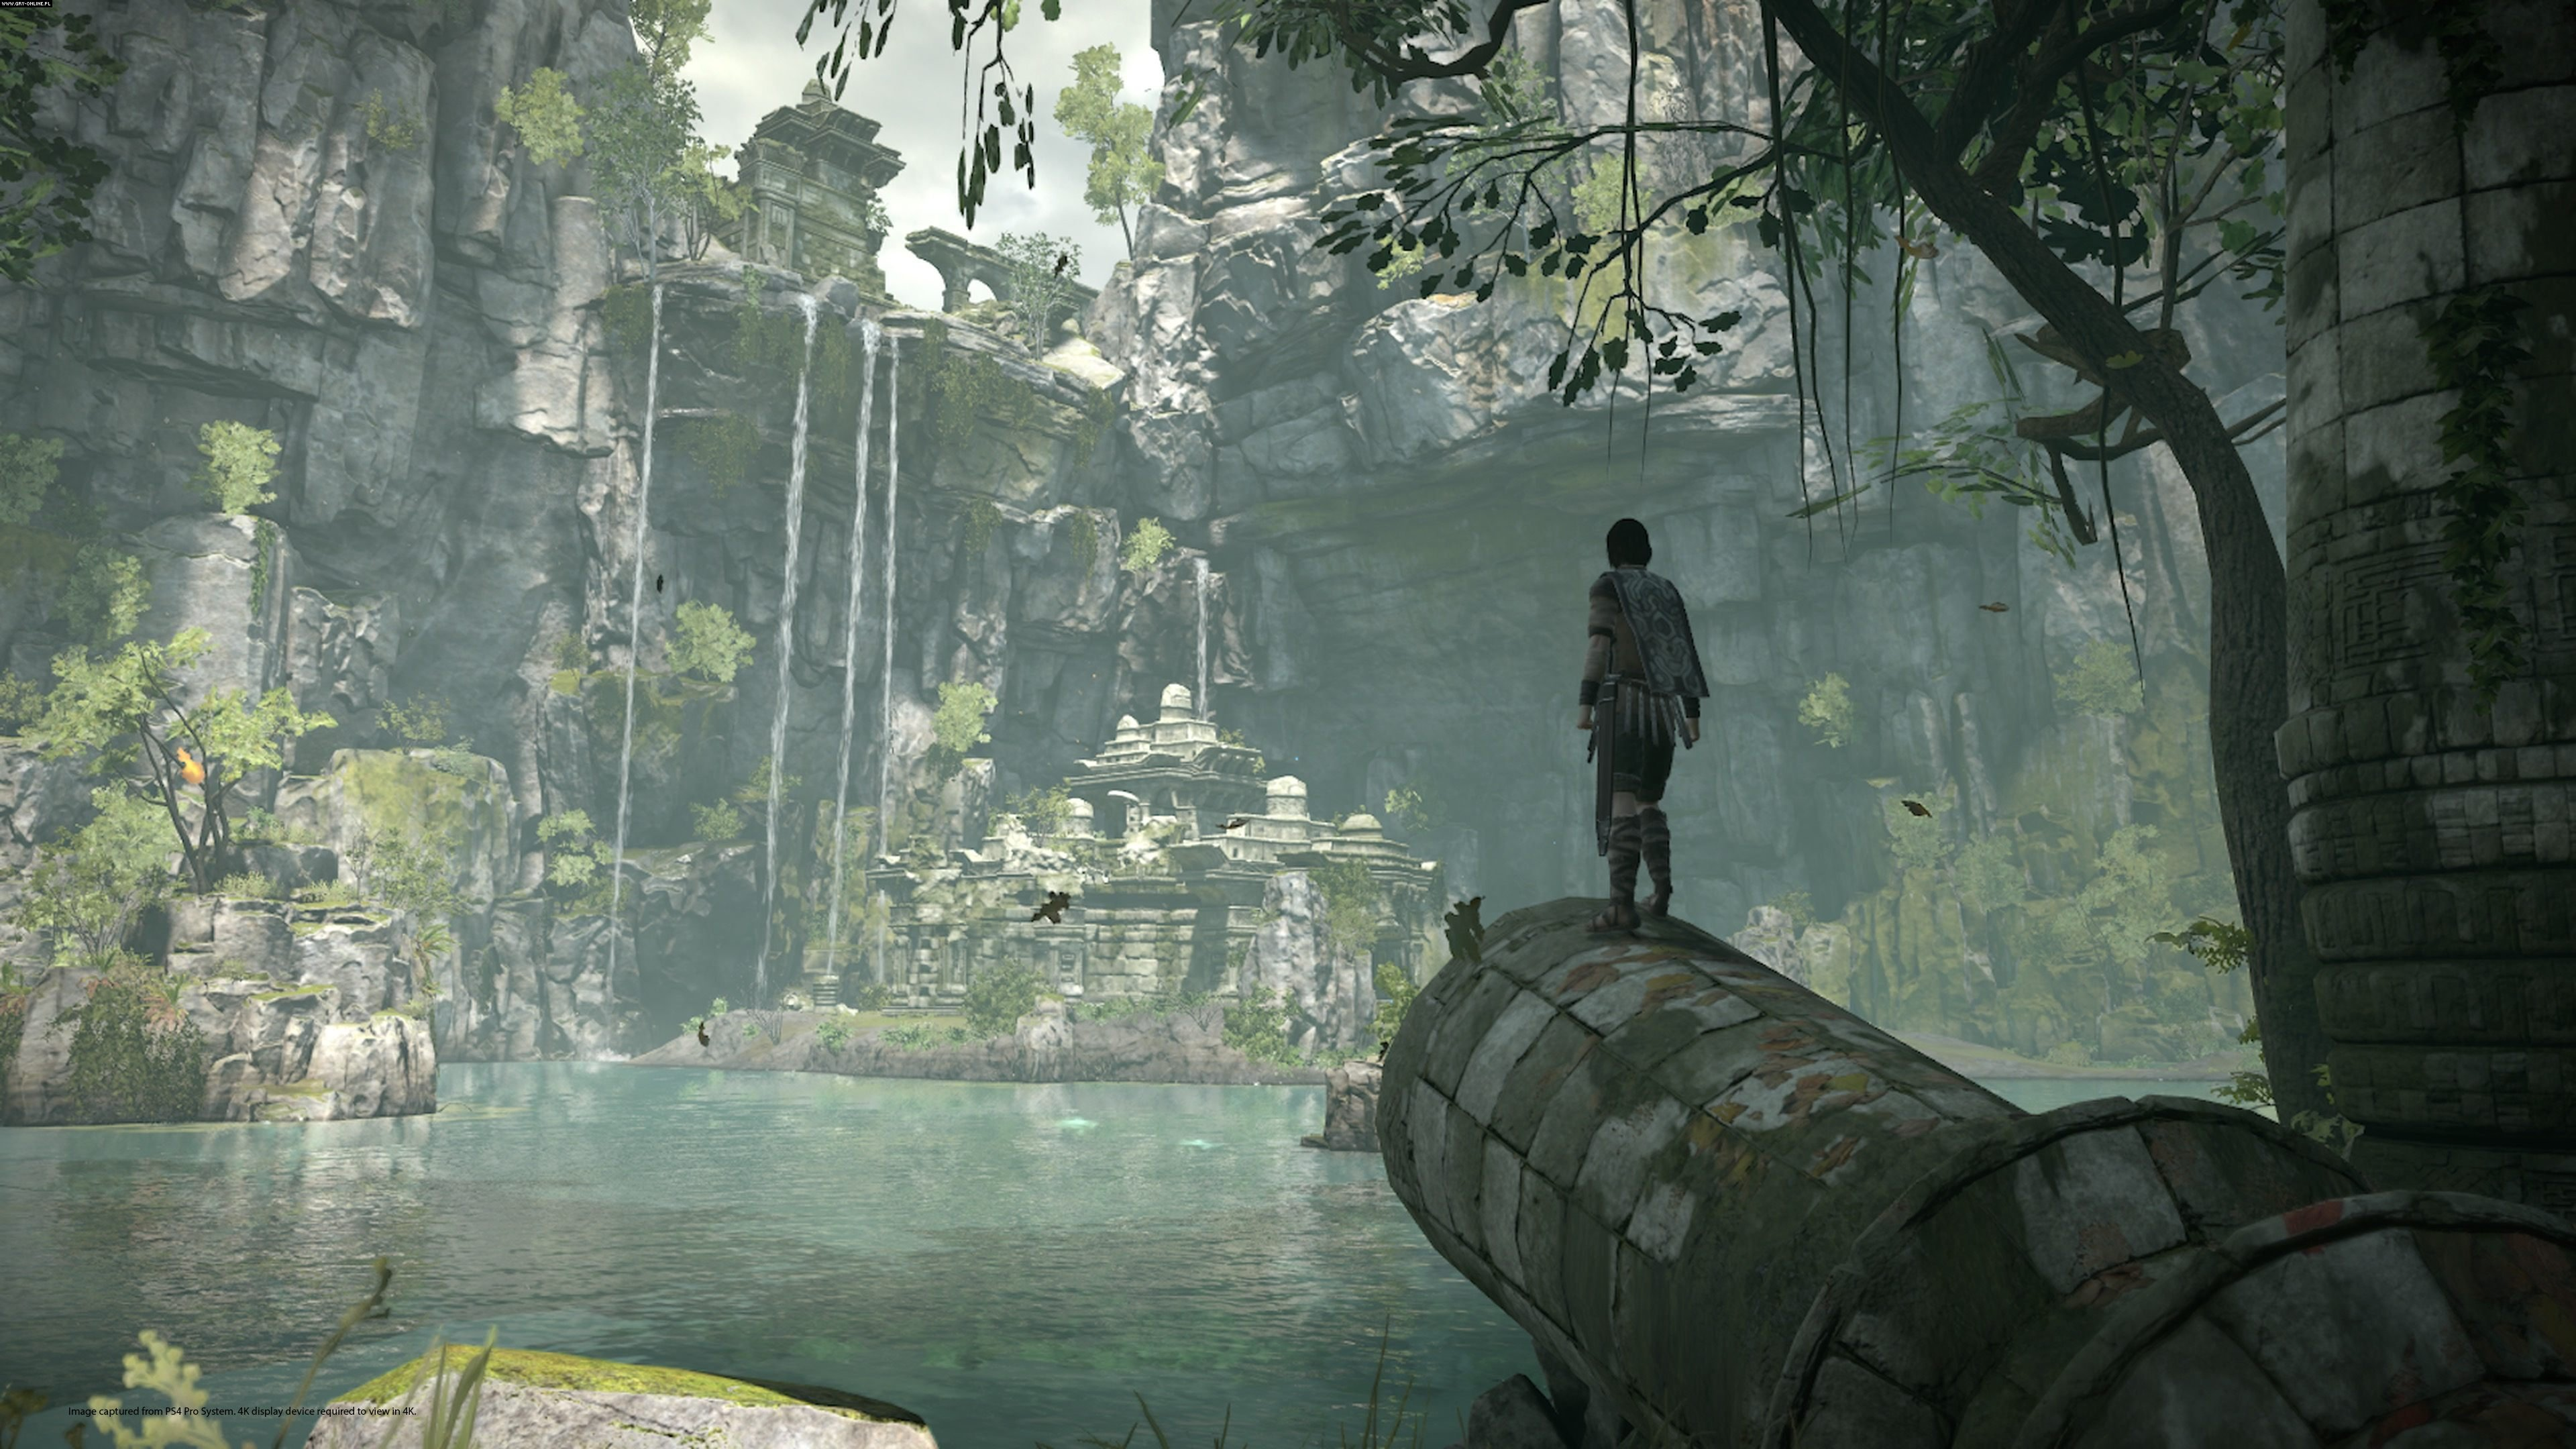 Shadow of the Colossus PS4 Games Image 17/32, Bluepoint Games, Sony Interactive Entertainment